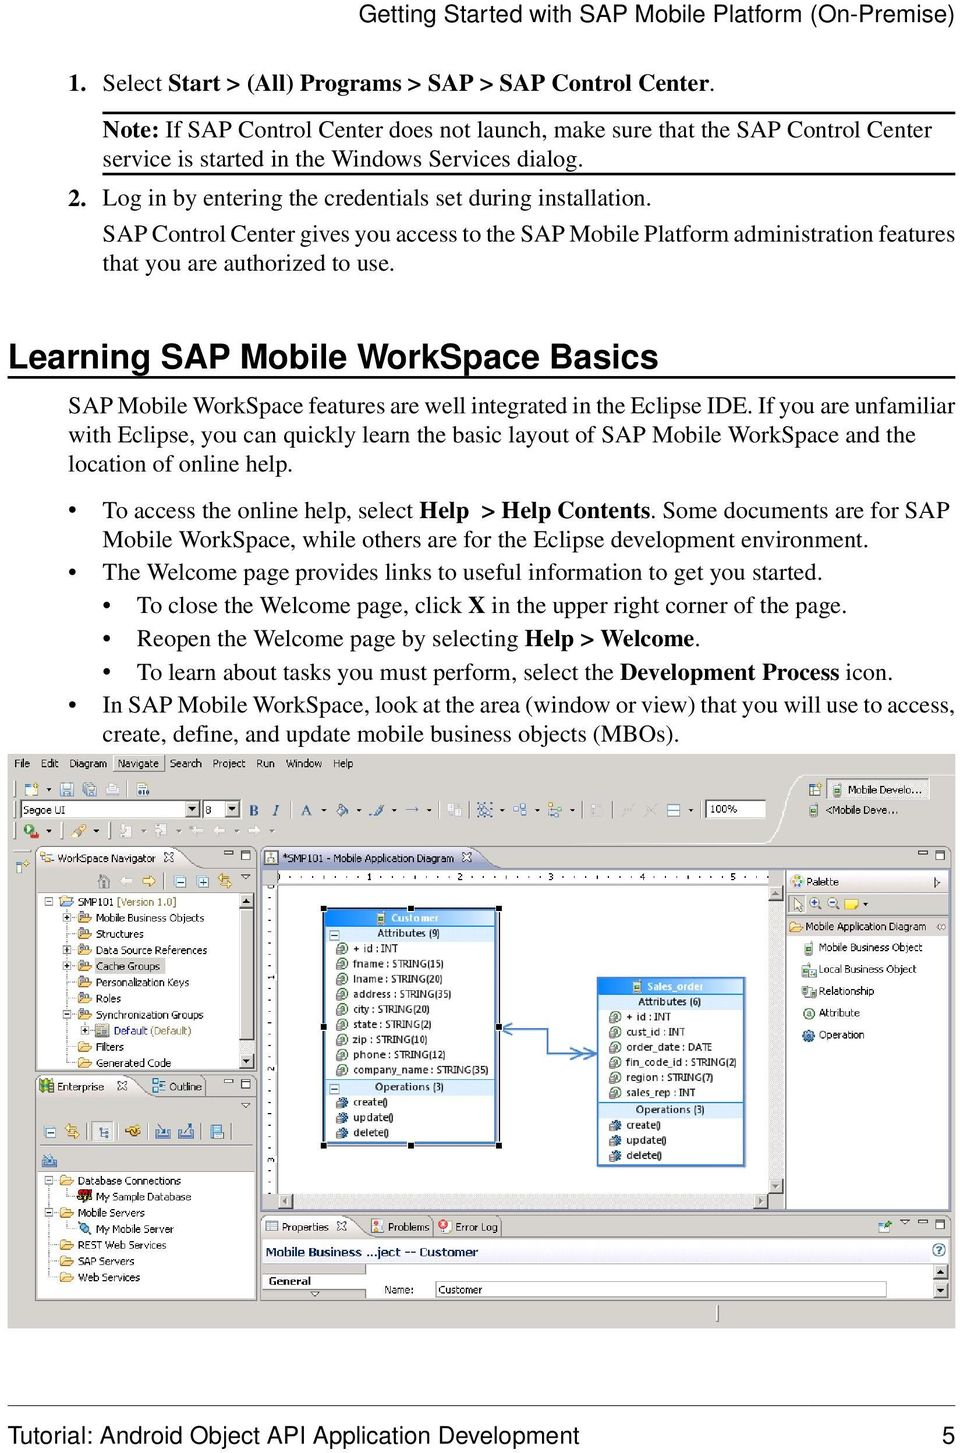 SAP Control Center gives you access to the SAP Mobile Platform administration features that you are authorized to use.